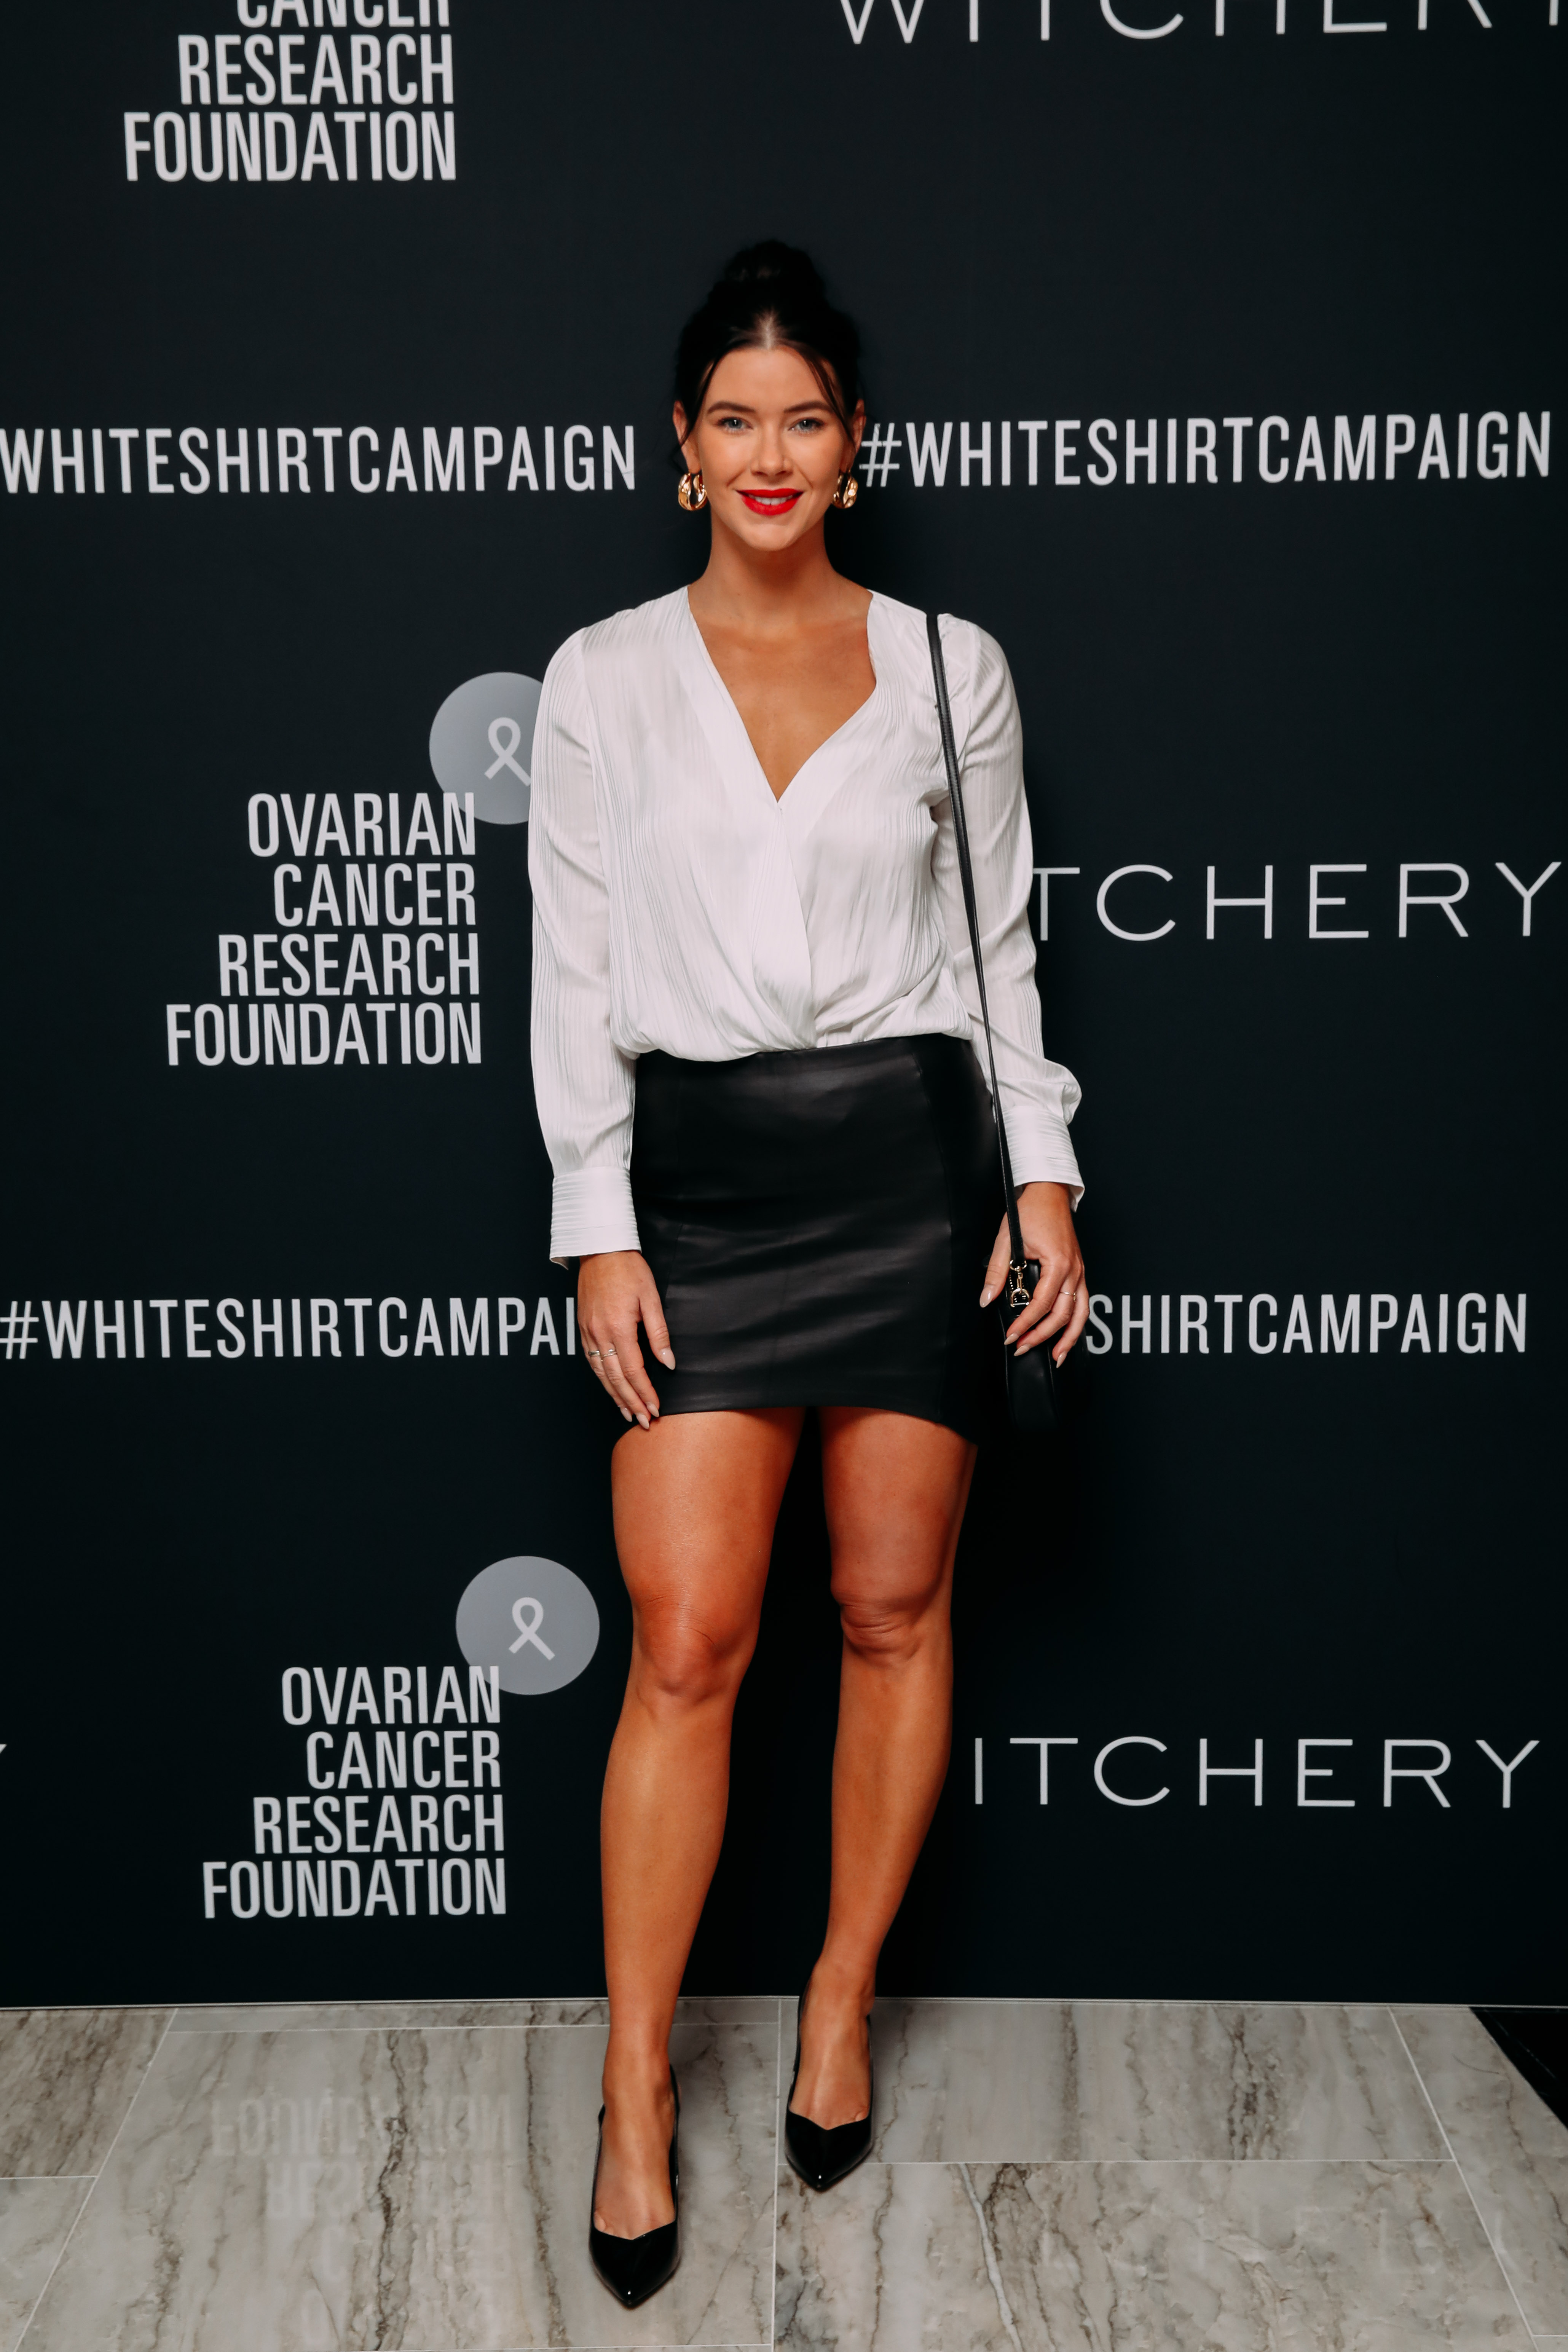 Brittany Hockley at the 2019 Witchery White Shirt Campaign 2